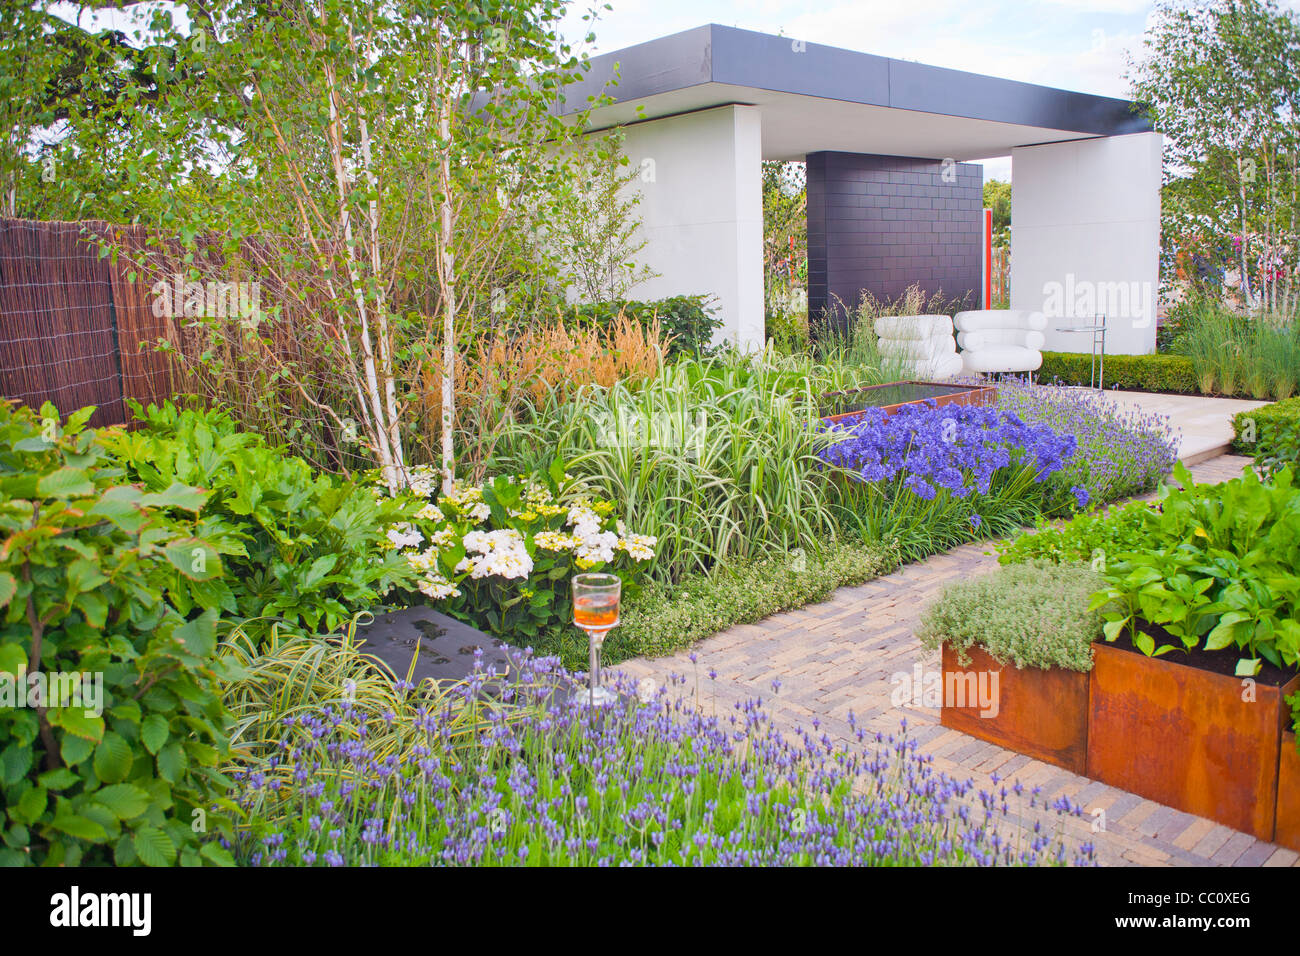 Contemporary Garden With Metal Raised Beds Paved Paths And